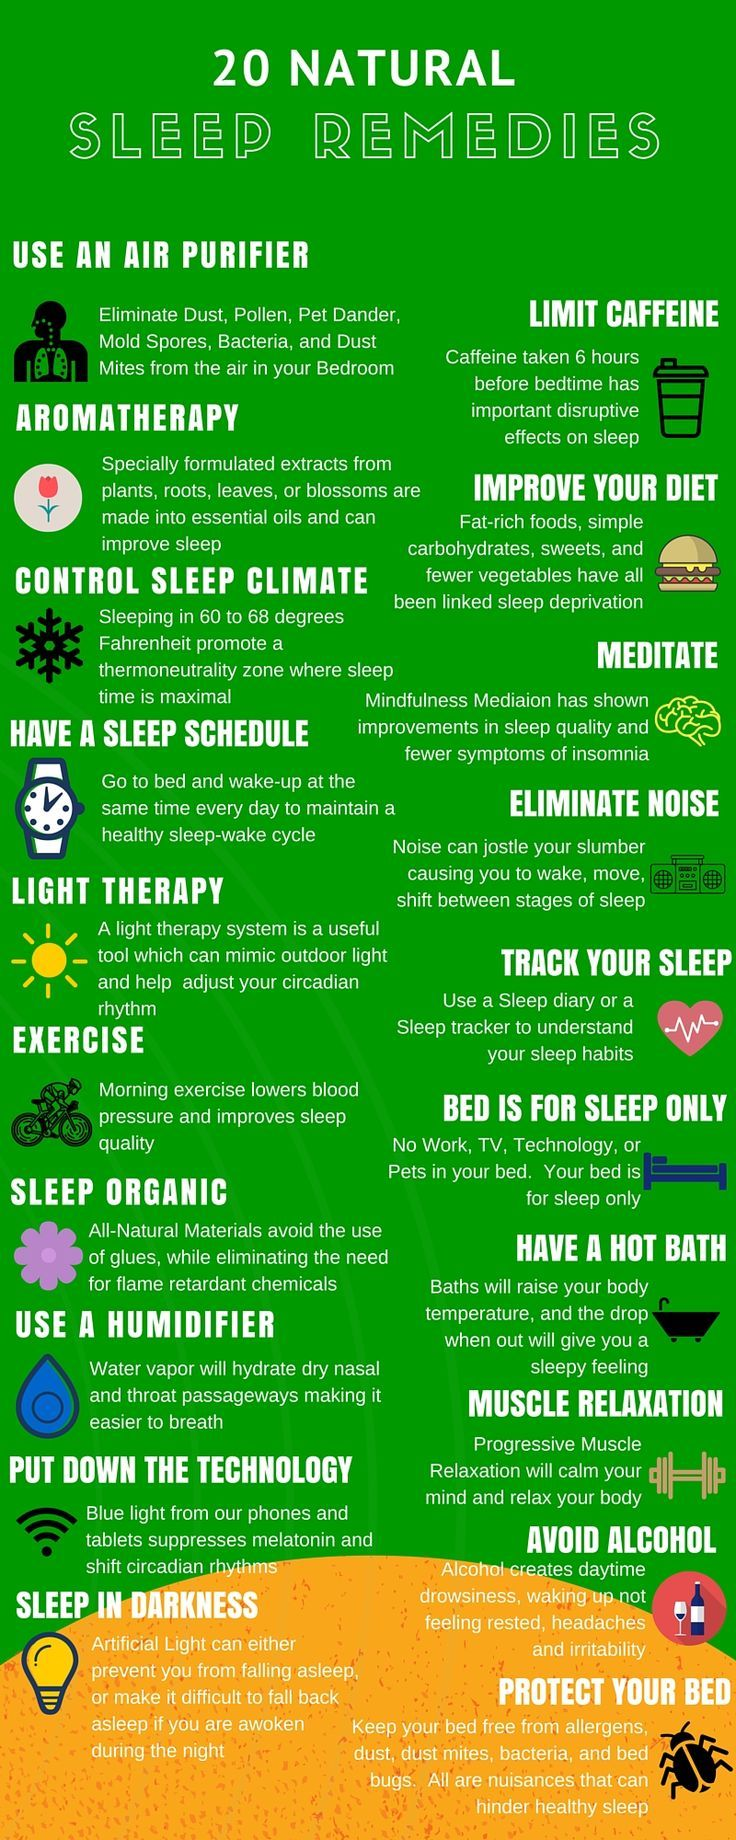 Delay Fatigue With Beta Alanine Prescription Sleep AidsNatural RemediesInsomnia